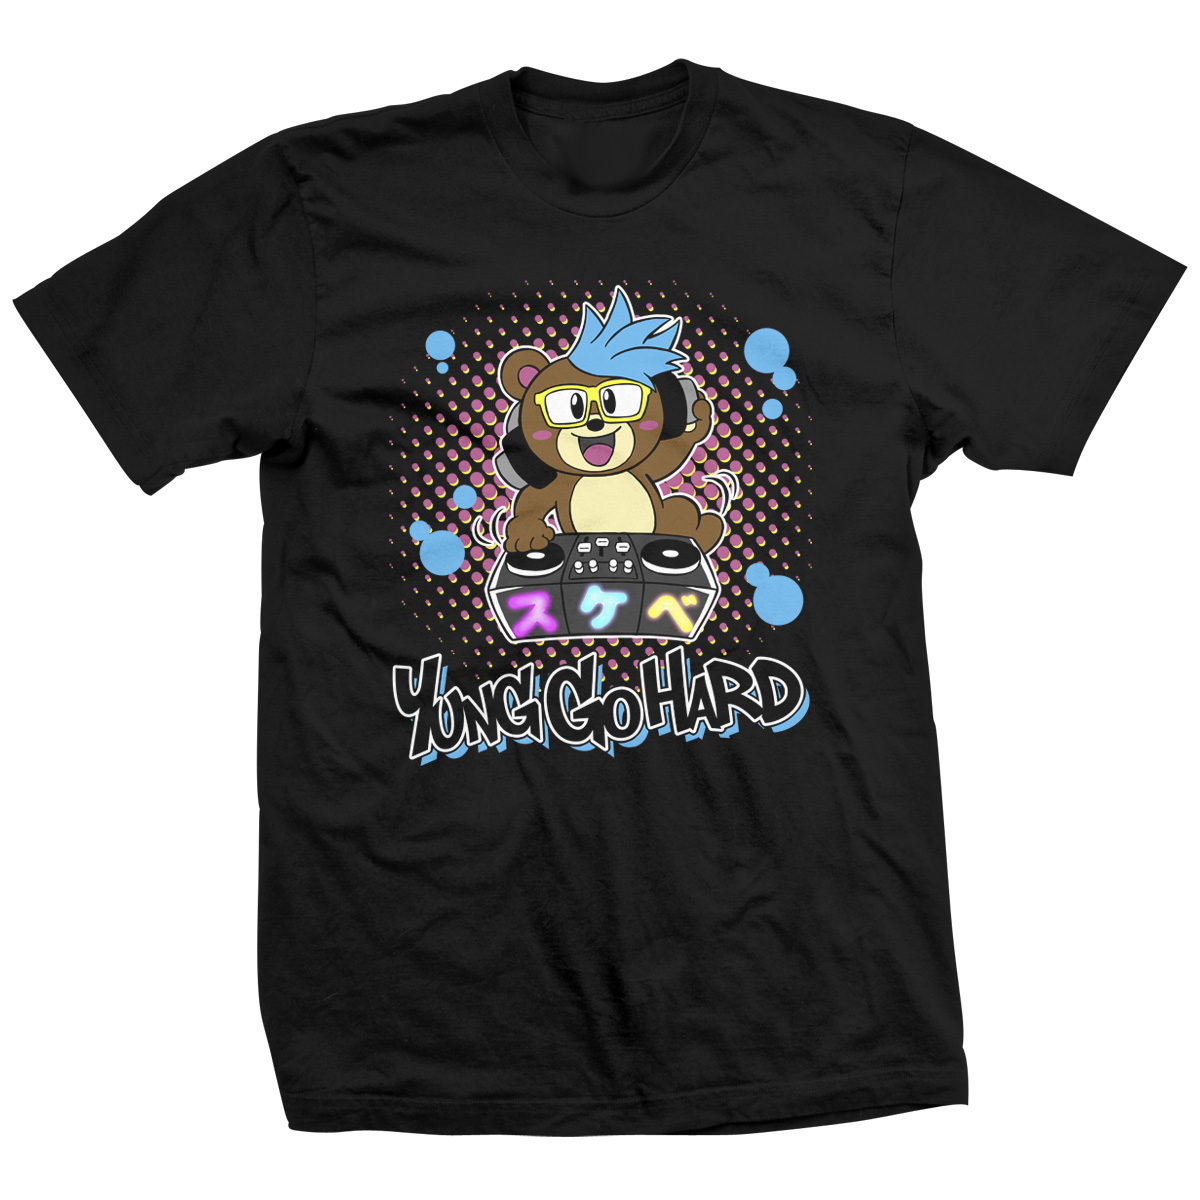 Zema Ion Yung Go Hard T-shirt